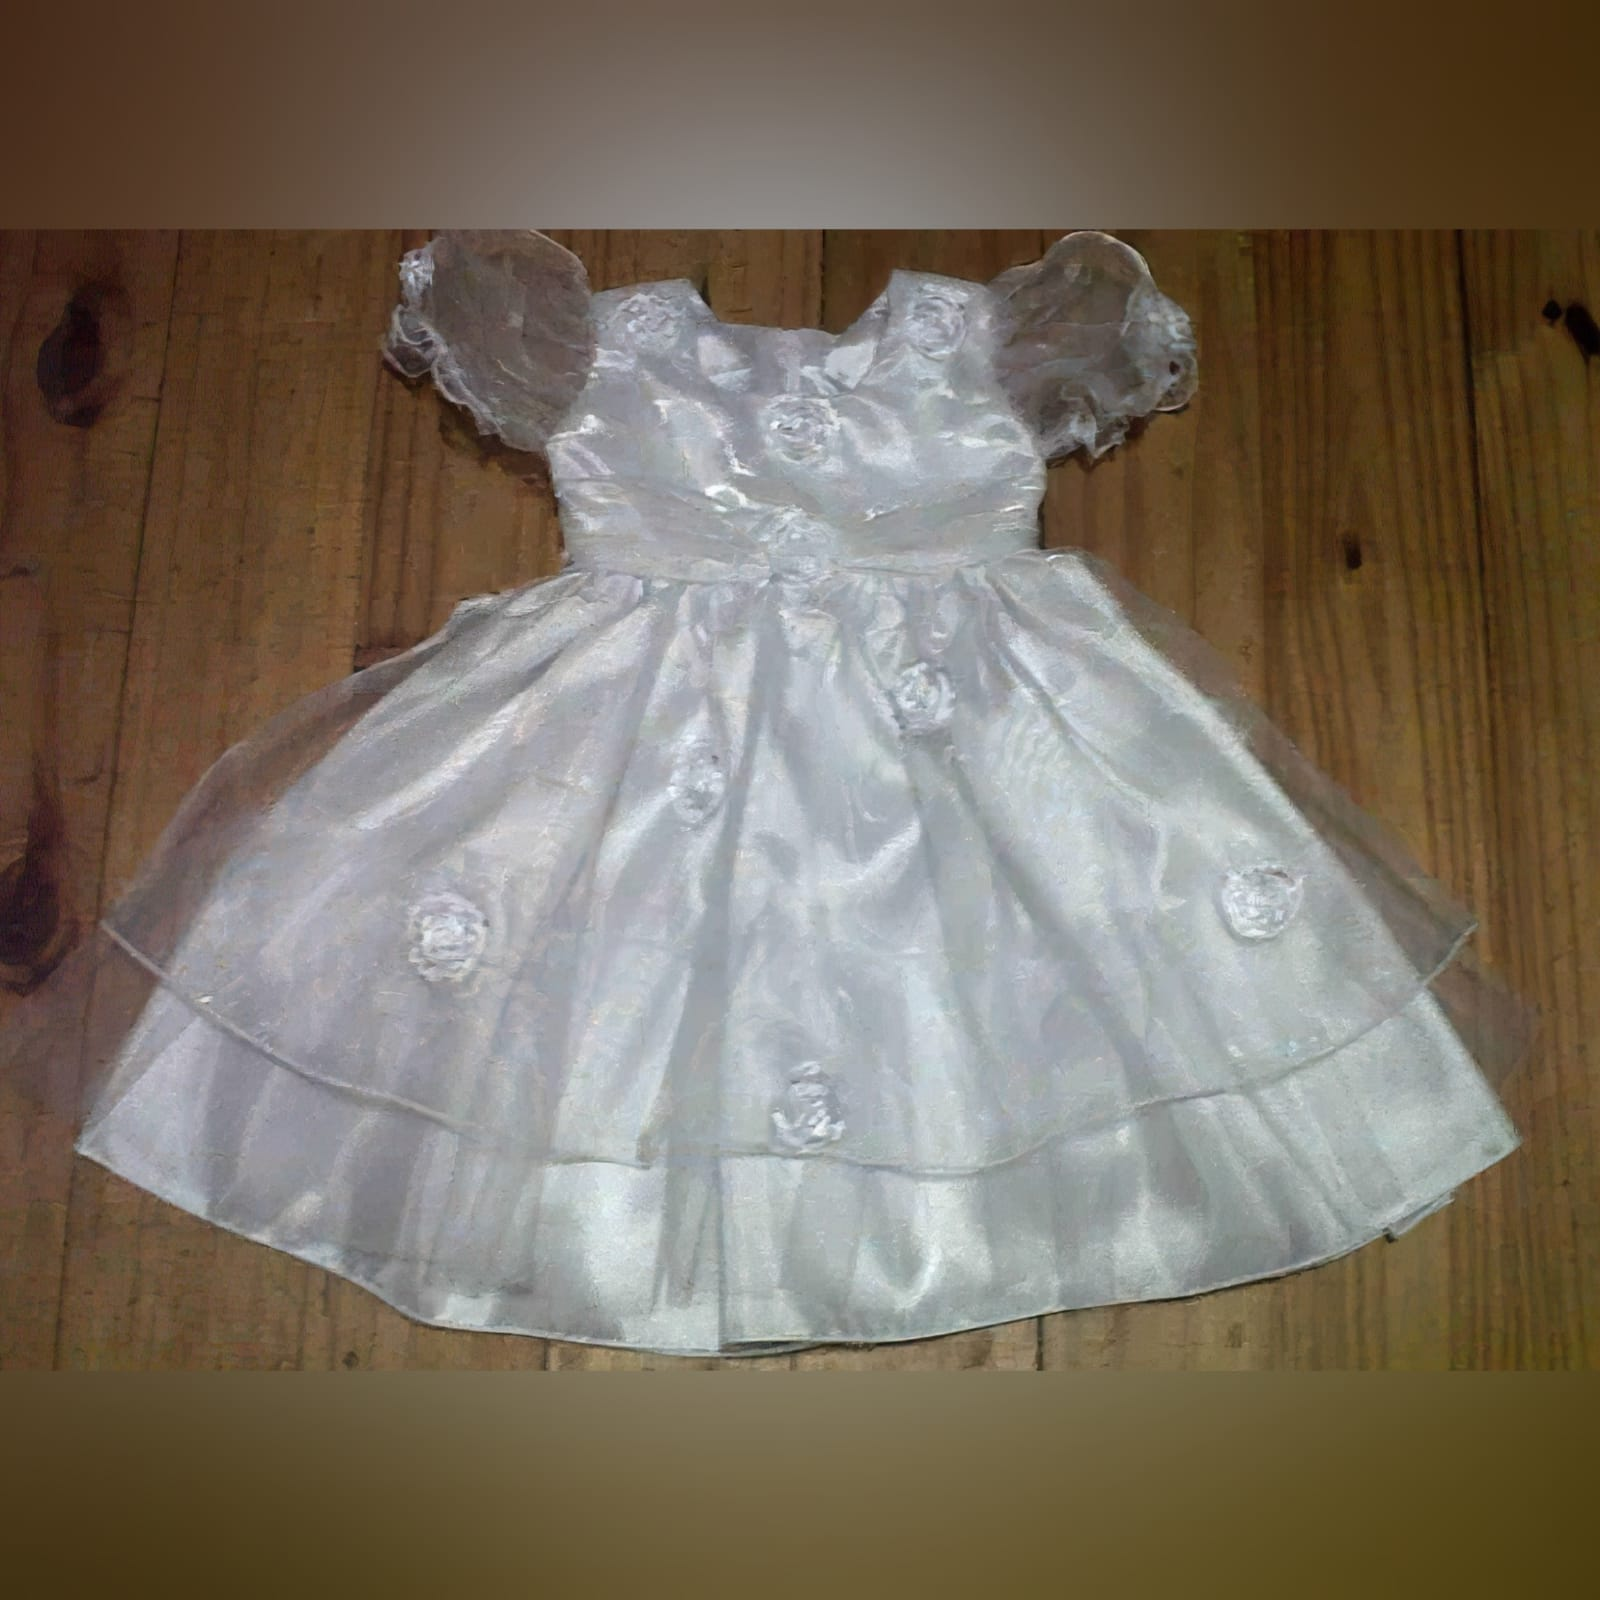 White baptism dress in crushed organza 2 white baptism dress made in satin with a double layer of crushed organza, beaded flowers on the bodice with ribbon and short bubble sleeves.